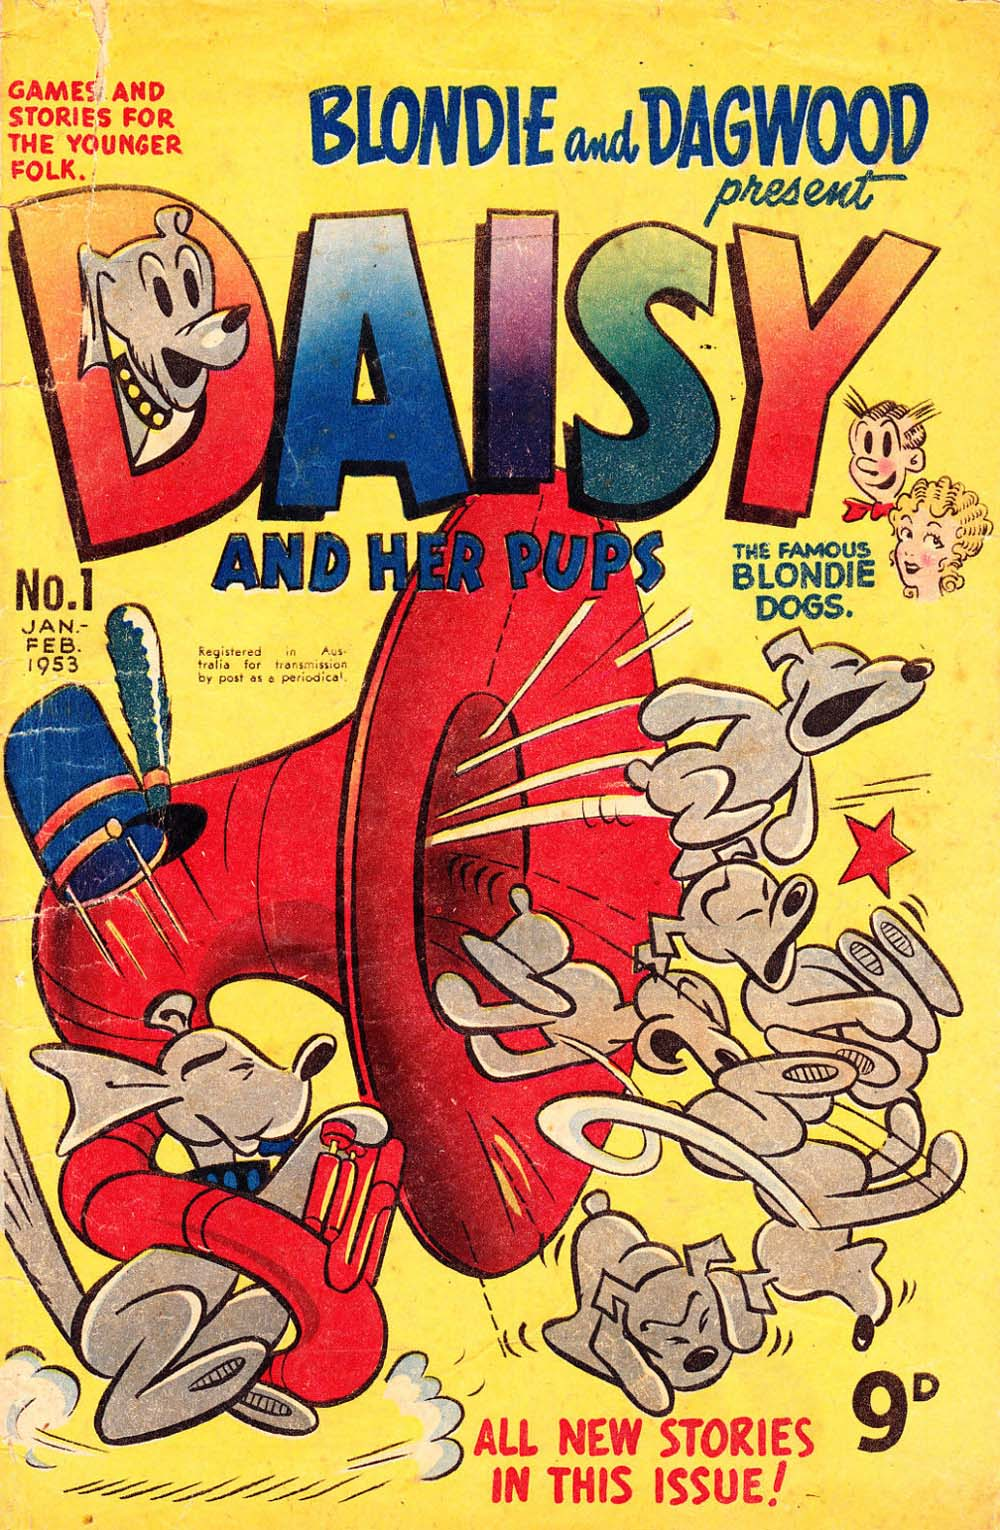 Blondie and Dagwood Present Daisy and Her Pups